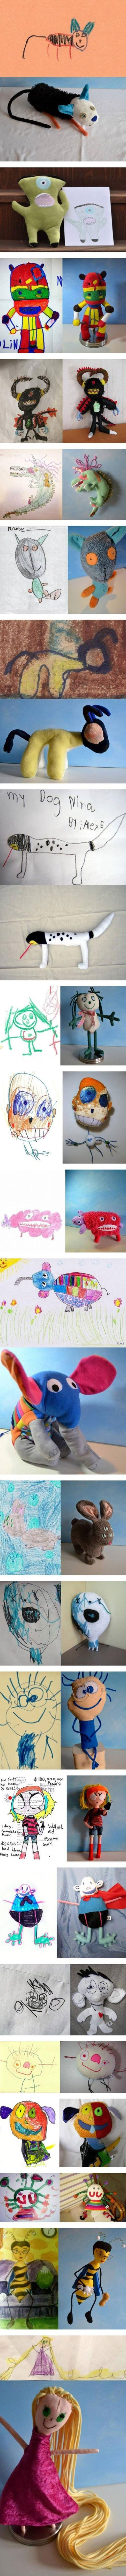 Children Drawings Made Into Toys